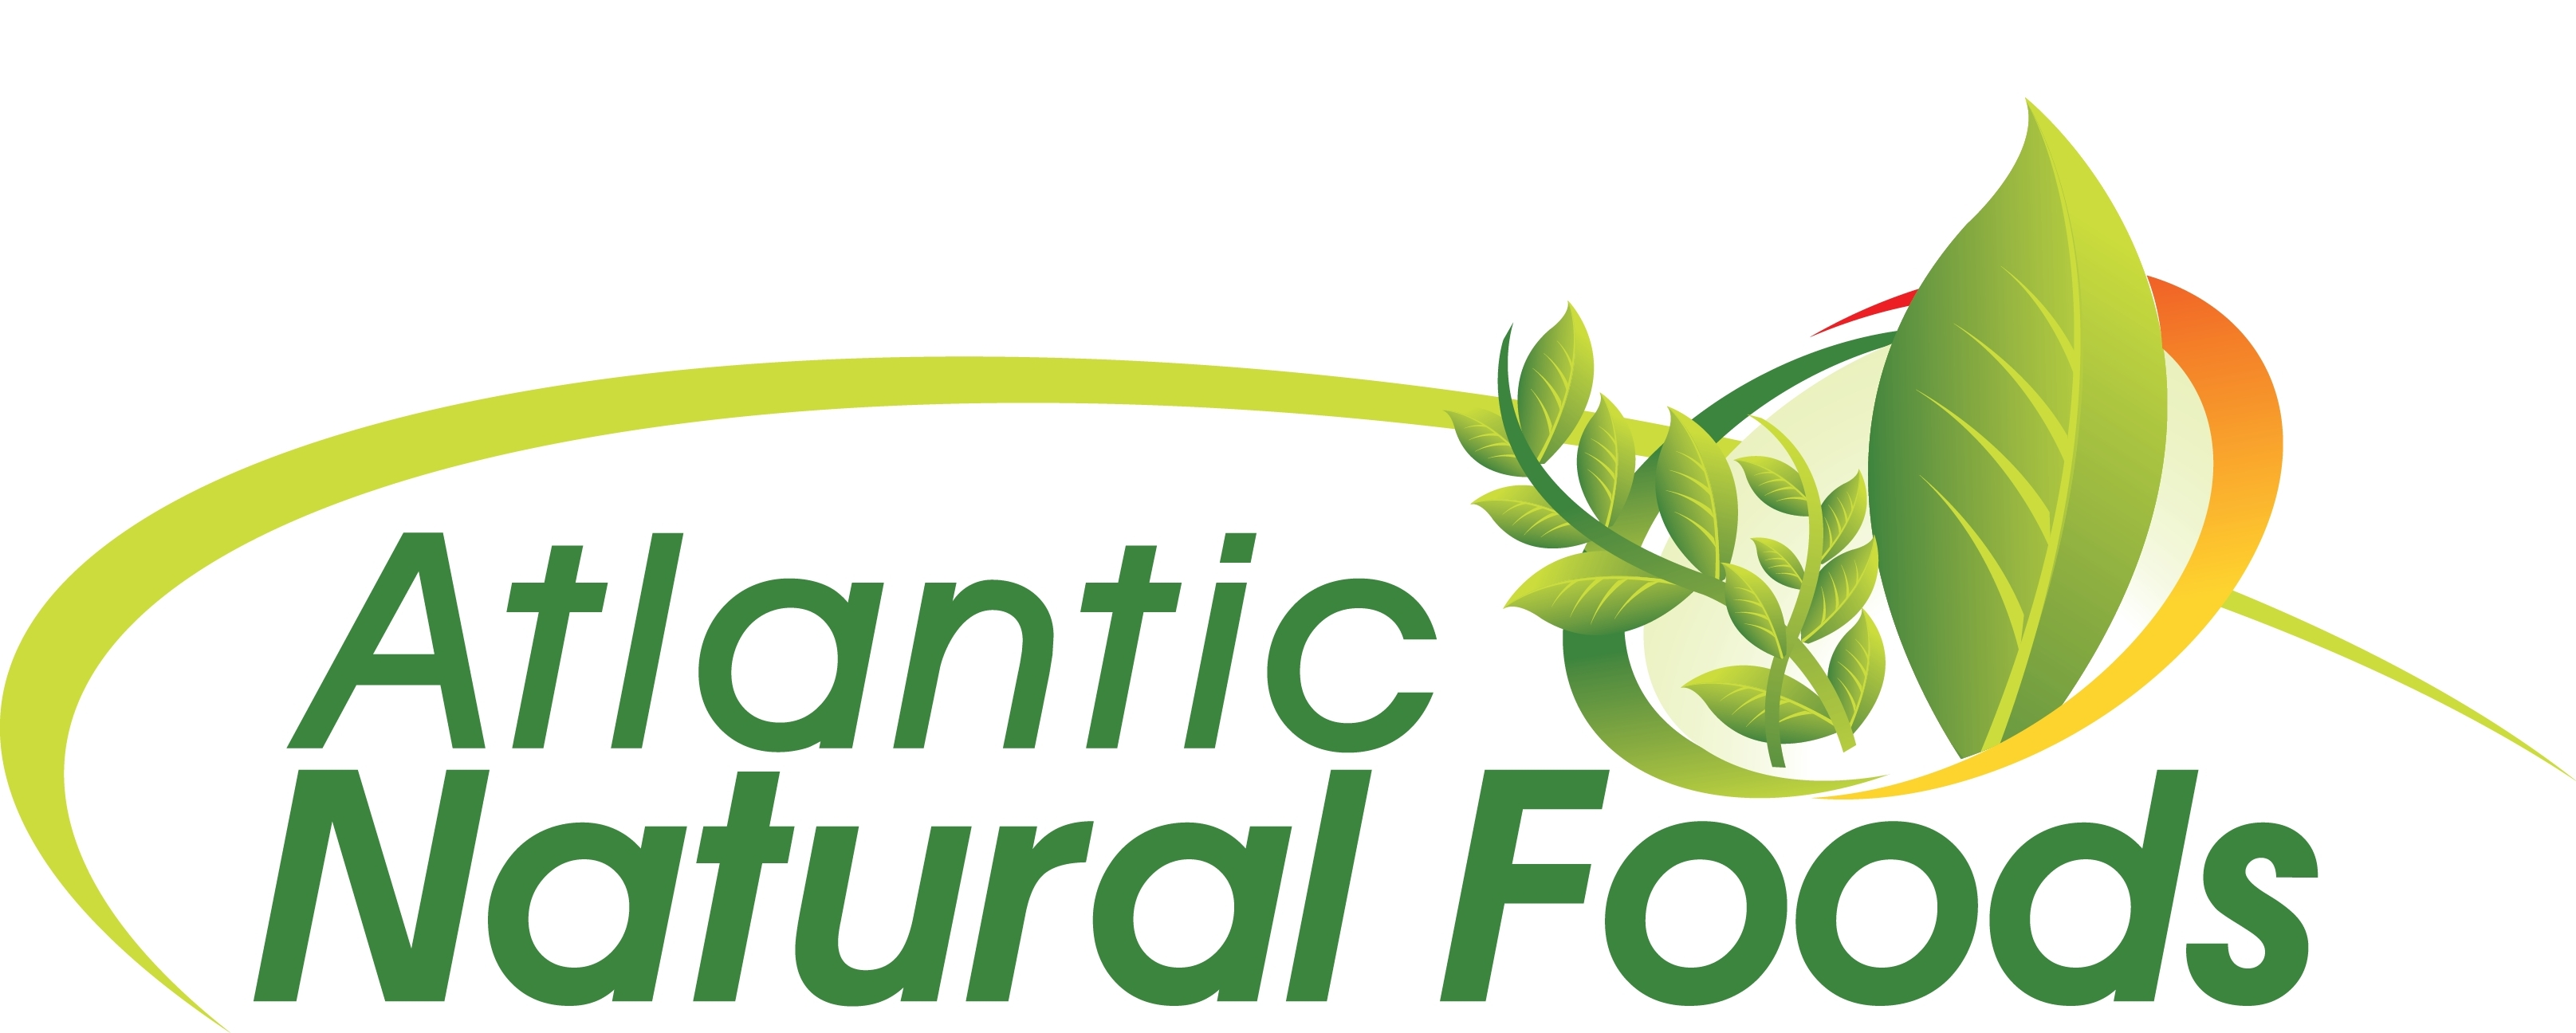 Atlantic Natural Foods Nashville Nc